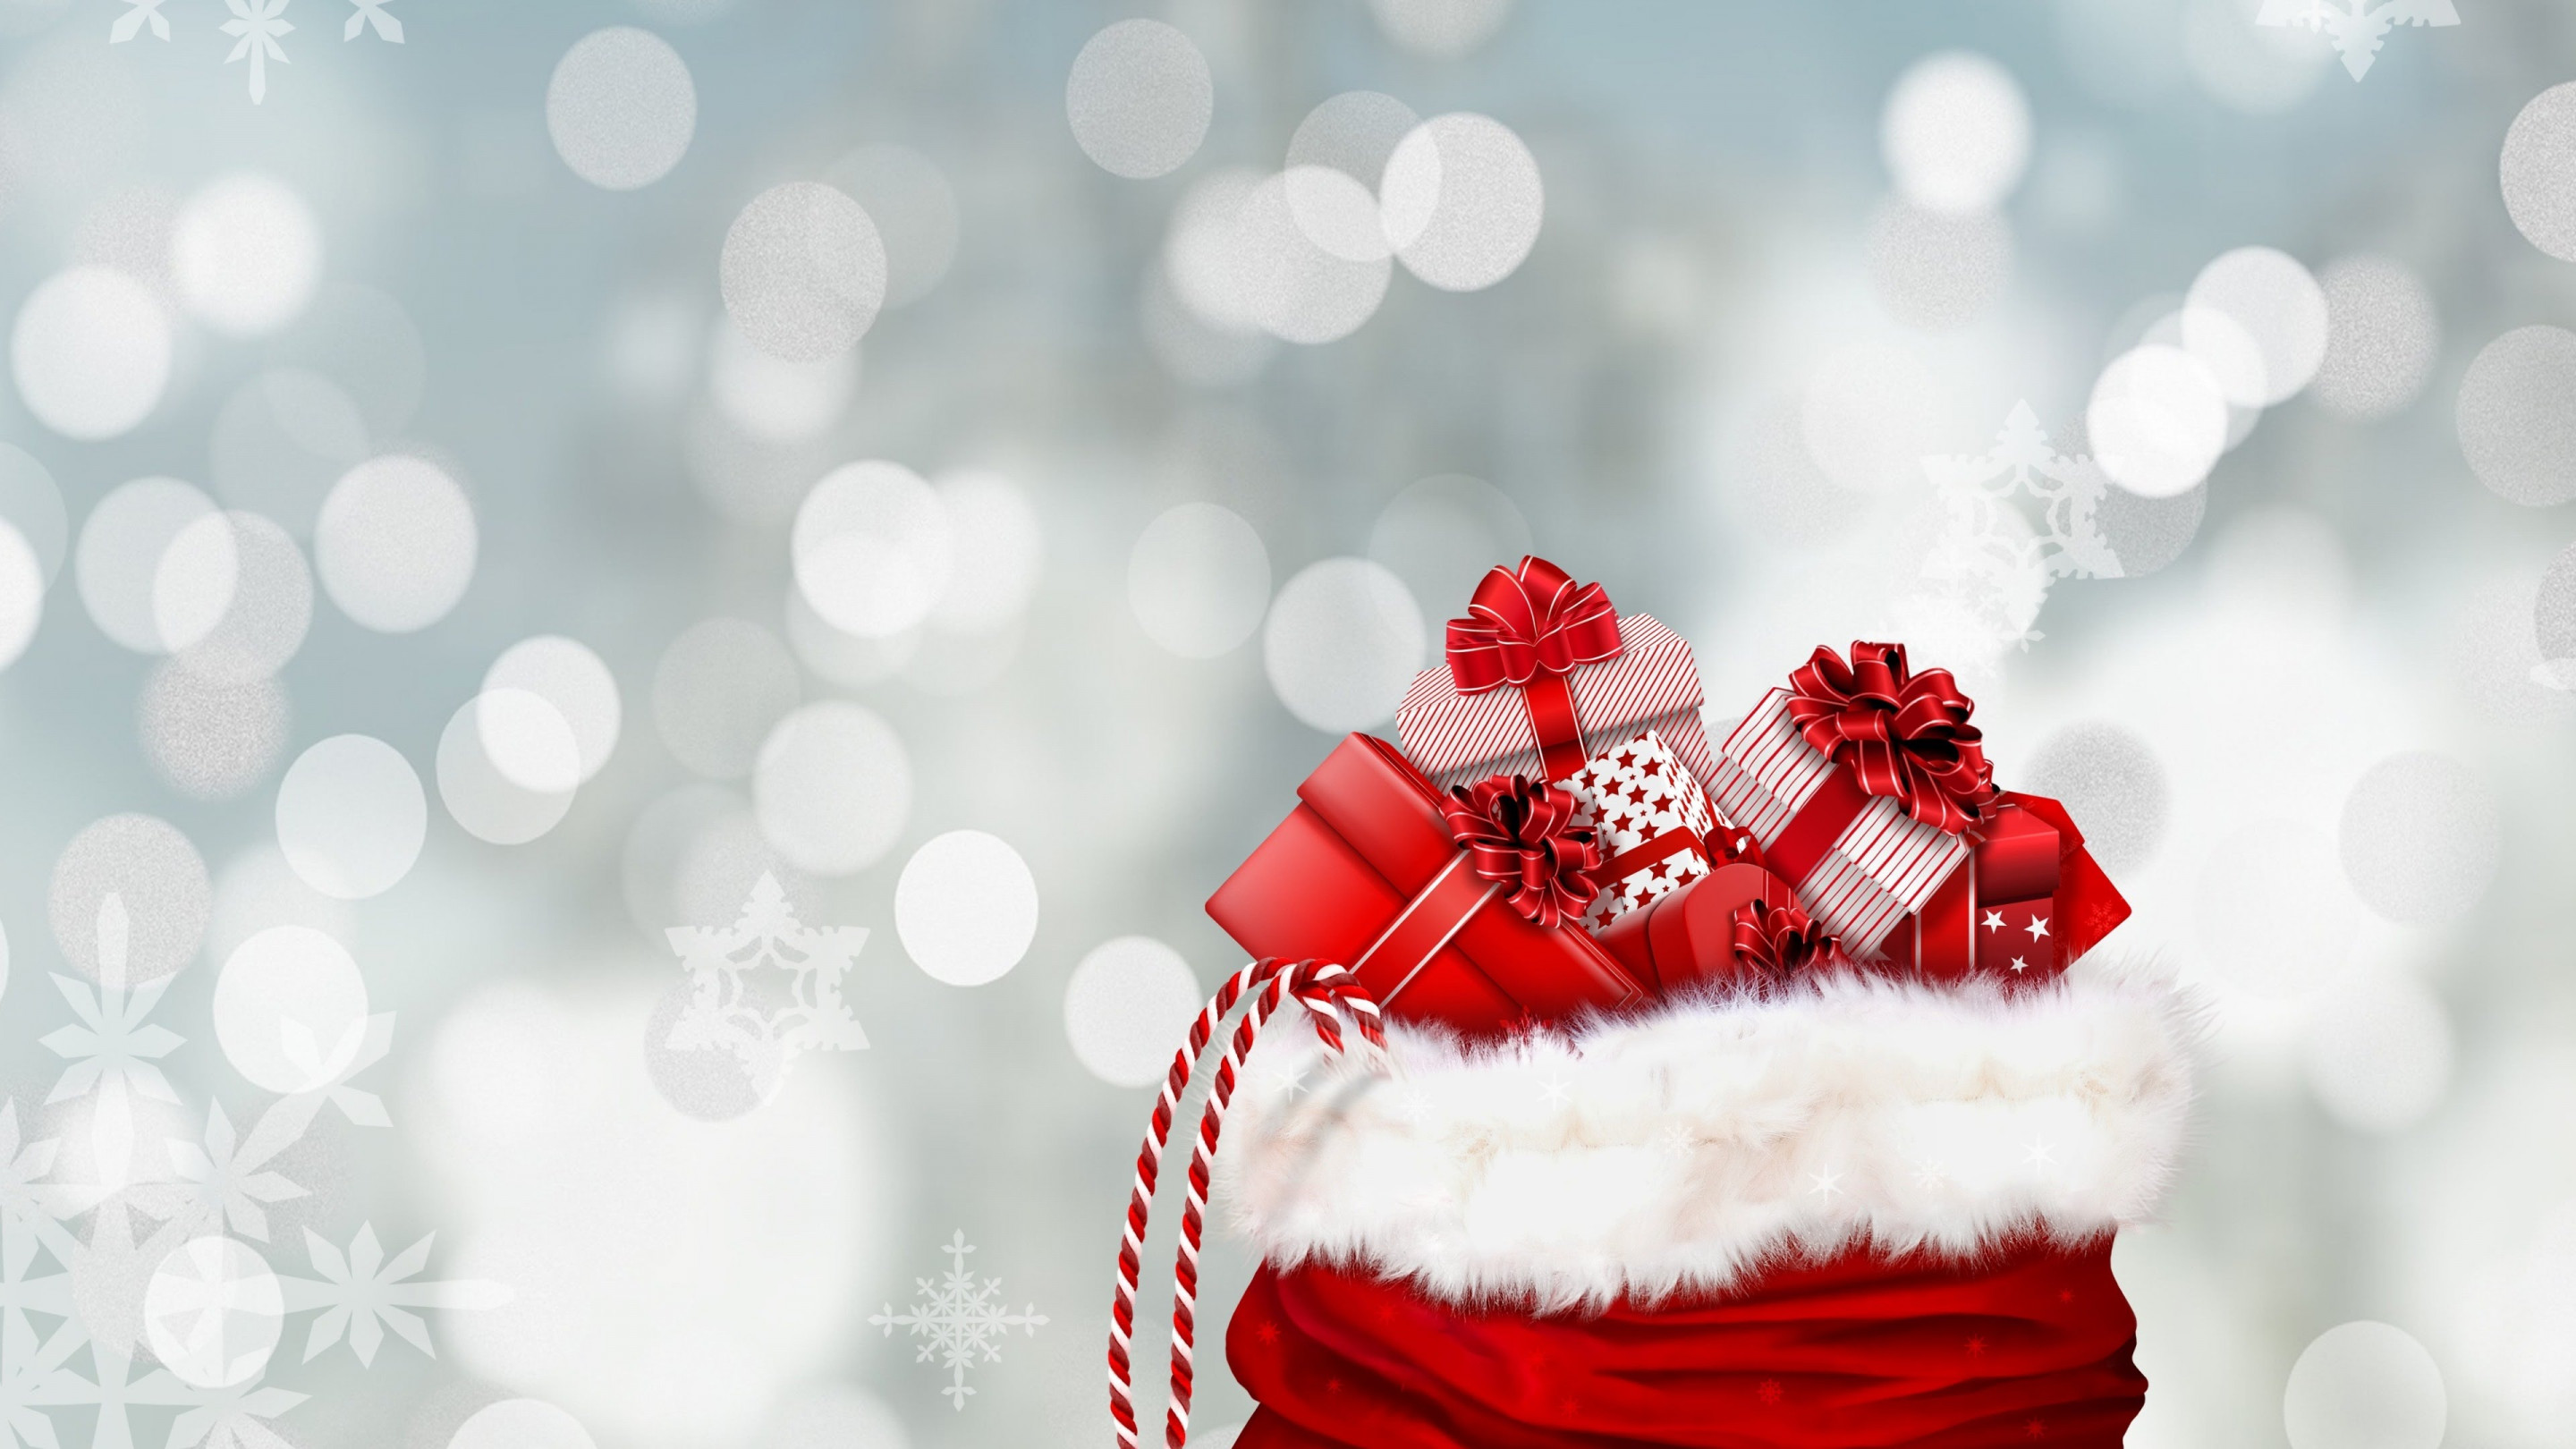 Bag with Christmas gifts wallpaper 2880x1620